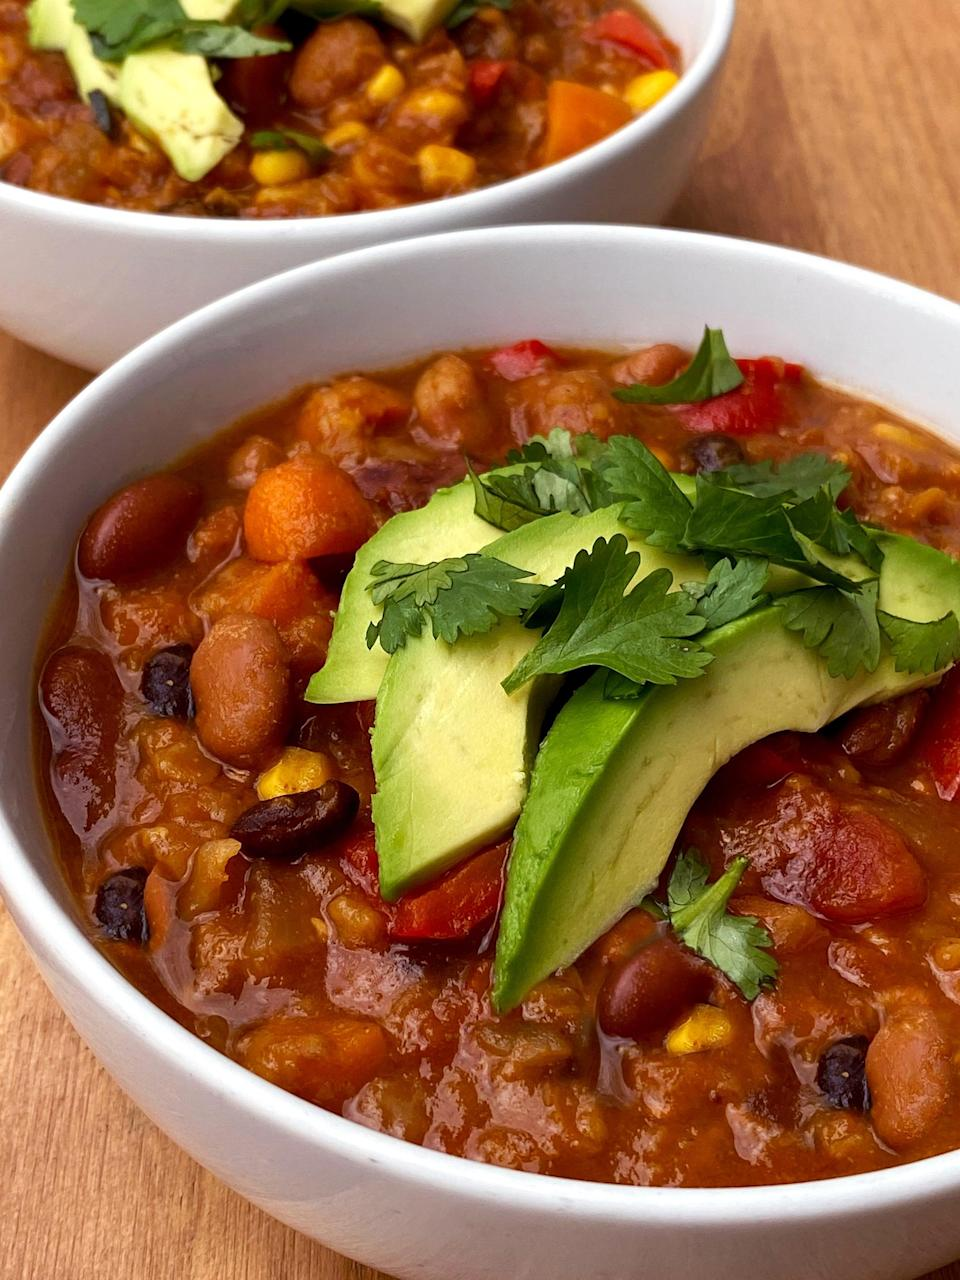 """<p>This hearty vegan chili only takes 10 minutes to prep, so you can throw the ingredients in your pressure cooker, and dinner will be ready in about 30 minutes.</p> <p><strong>Get the recipe:</strong> <a href=""""https://www.popsugar.com/fitness/high-protein-vegan-chili-instant-pot-recipe-47973345"""" class=""""link rapid-noclick-resp"""" rel=""""nofollow noopener"""" target=""""_blank"""" data-ylk=""""slk:4-bean Instant Pot chili"""">4-bean Instant Pot chili</a></p>"""